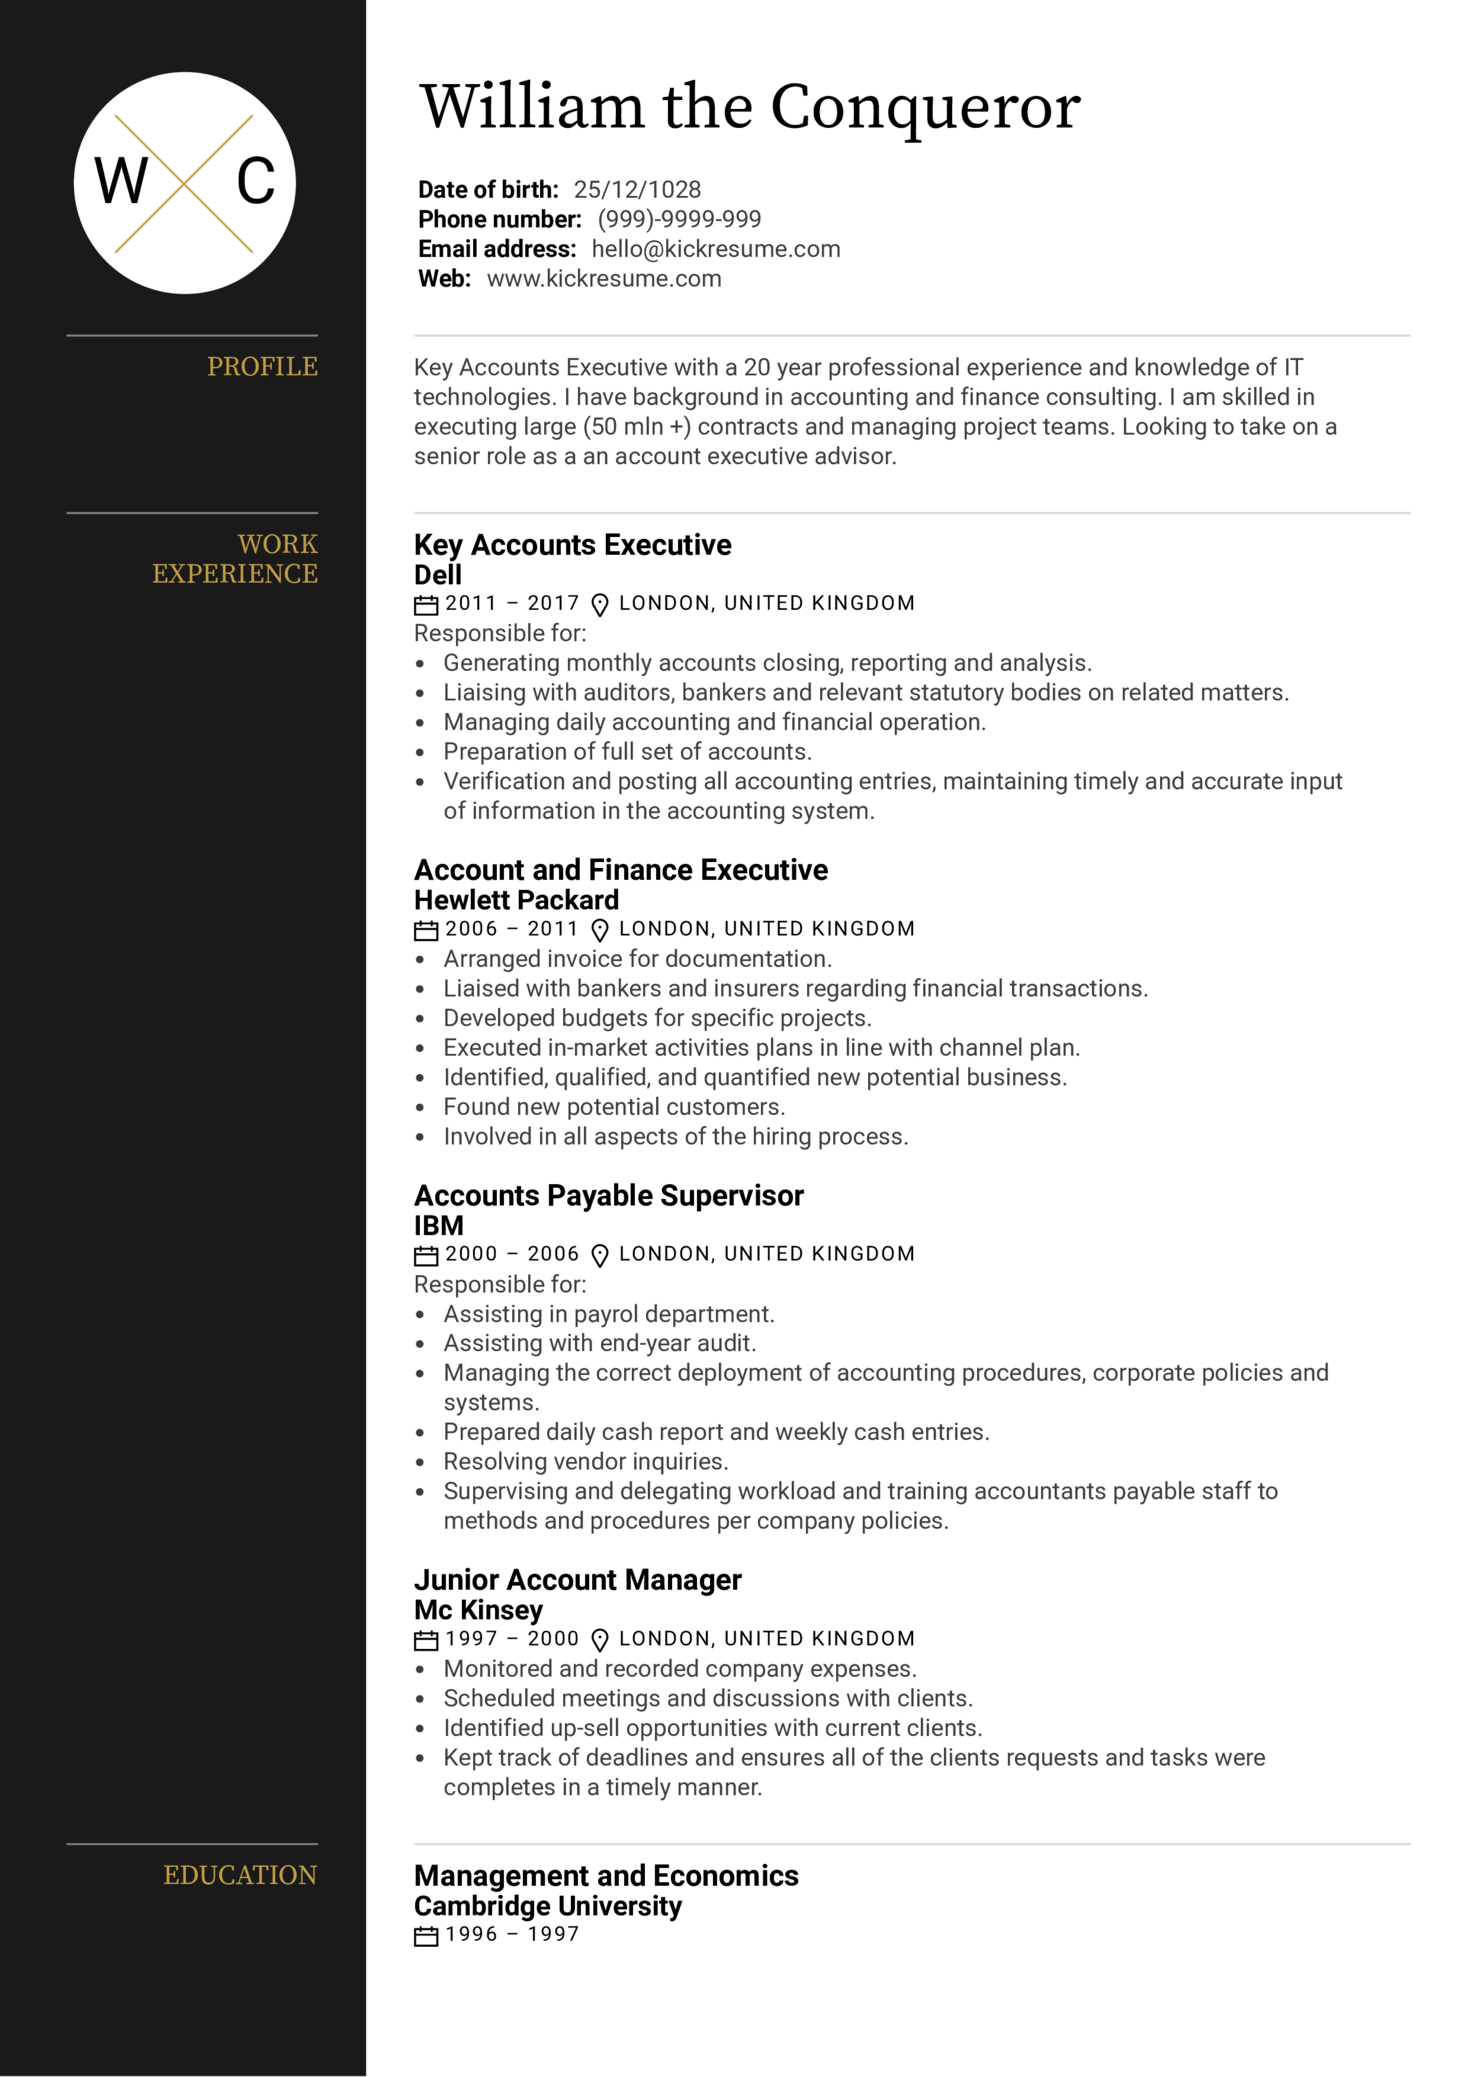 Executive Account Manager Resume Sample (parte 1)